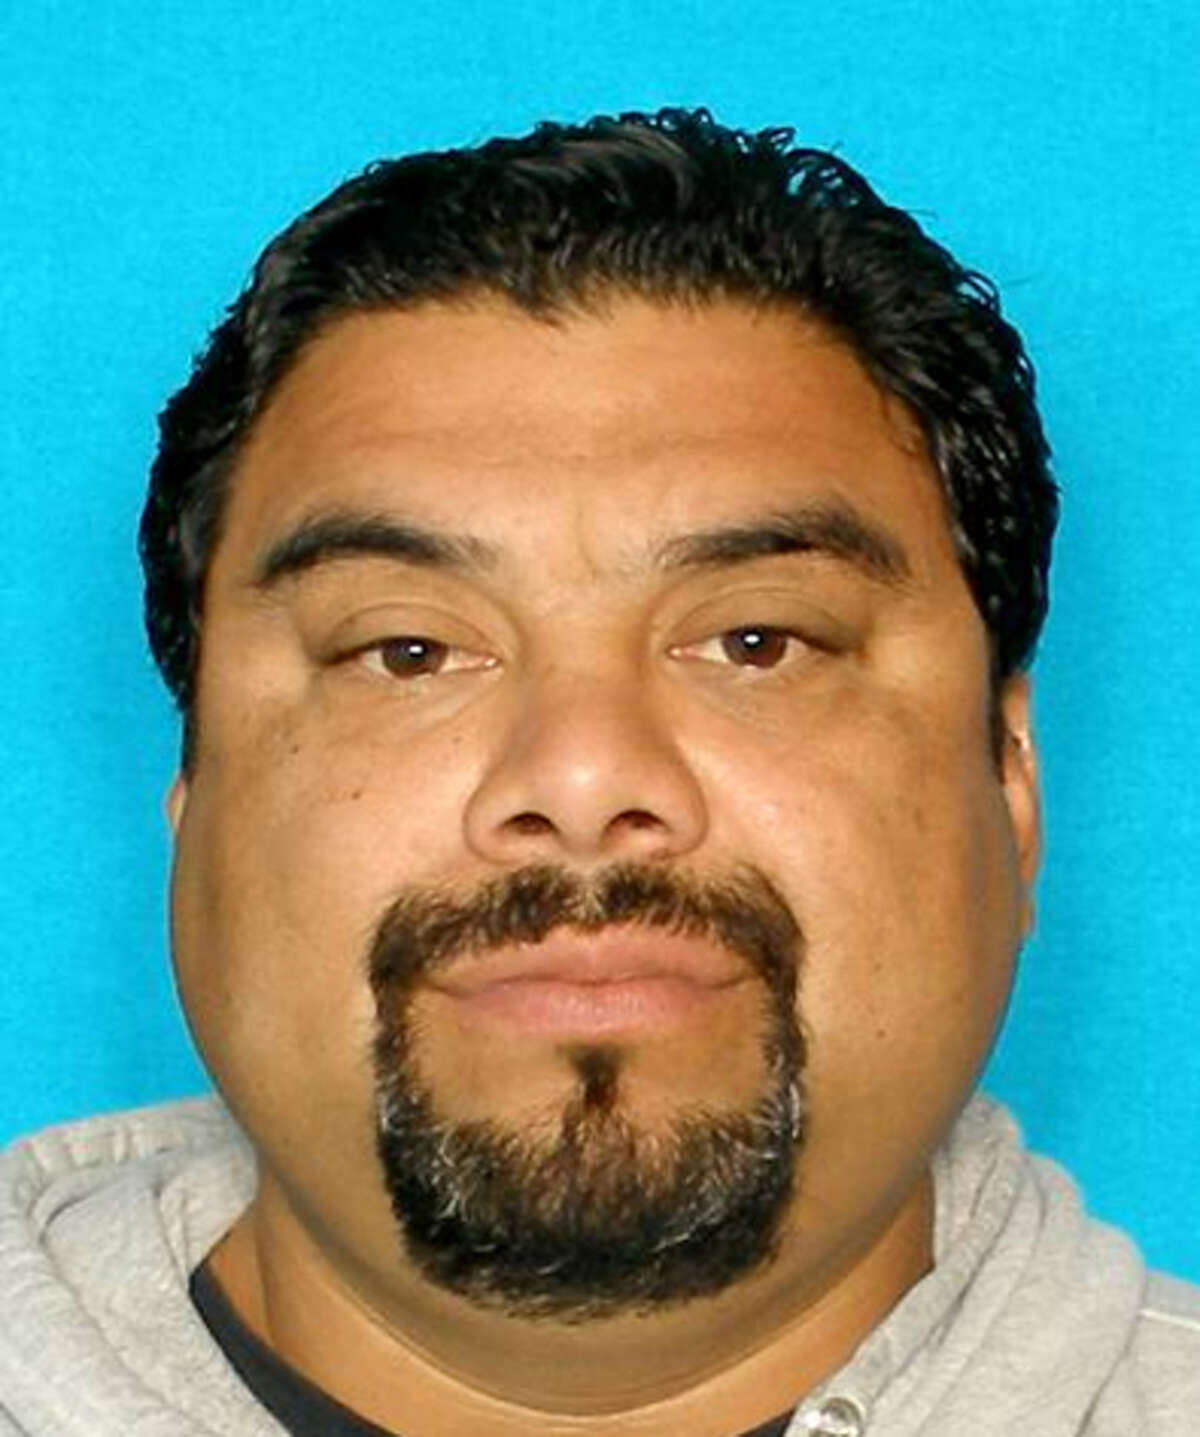 SAPD identified Larry Castro, 40, as a suspect in the death of Juan Romero on Oct. 15 and issued a murder warrant for him.